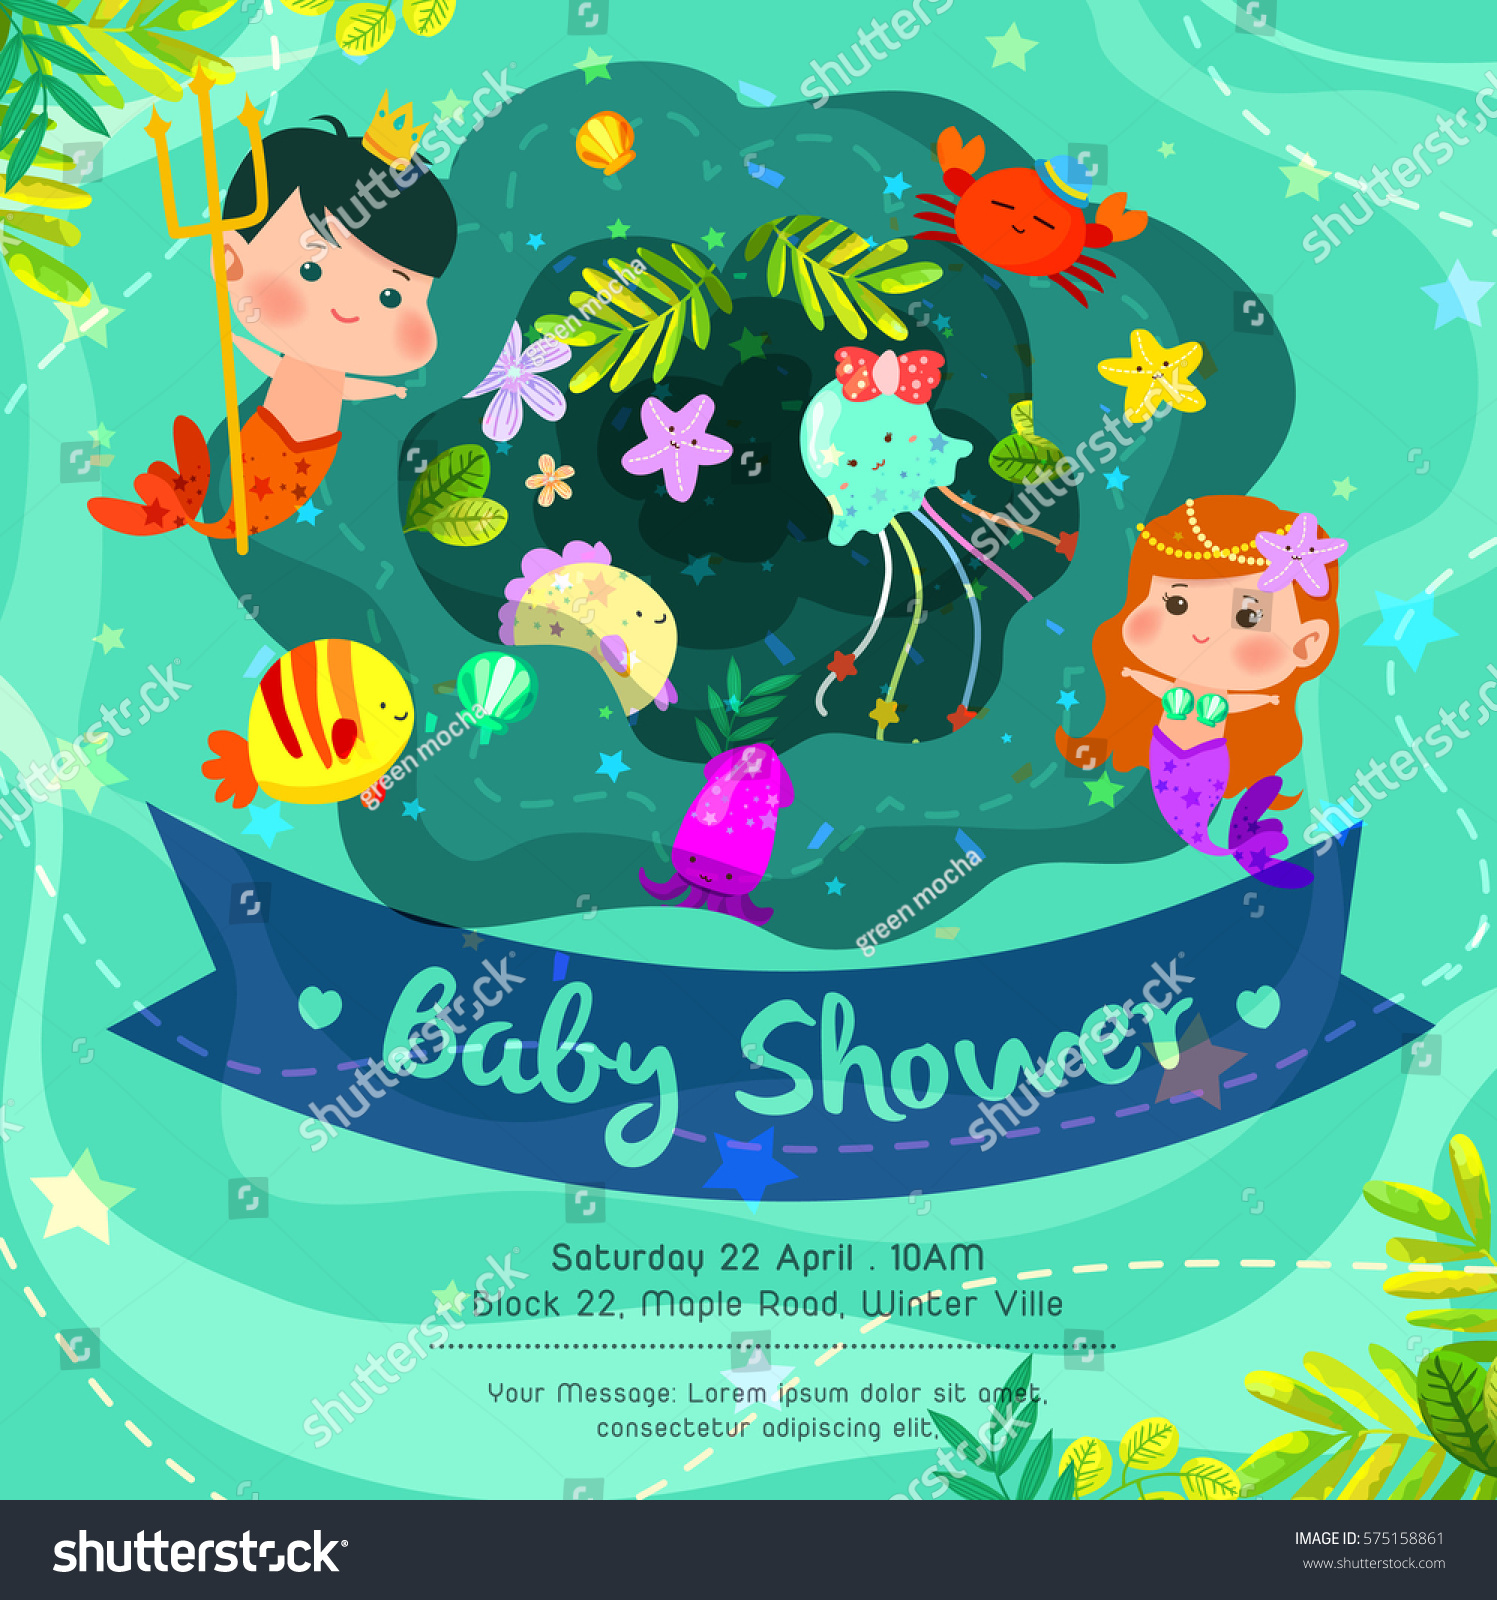 Beautiful Under The Sea Baby Shower Invitation Card With Cute Merman And  Mermaid